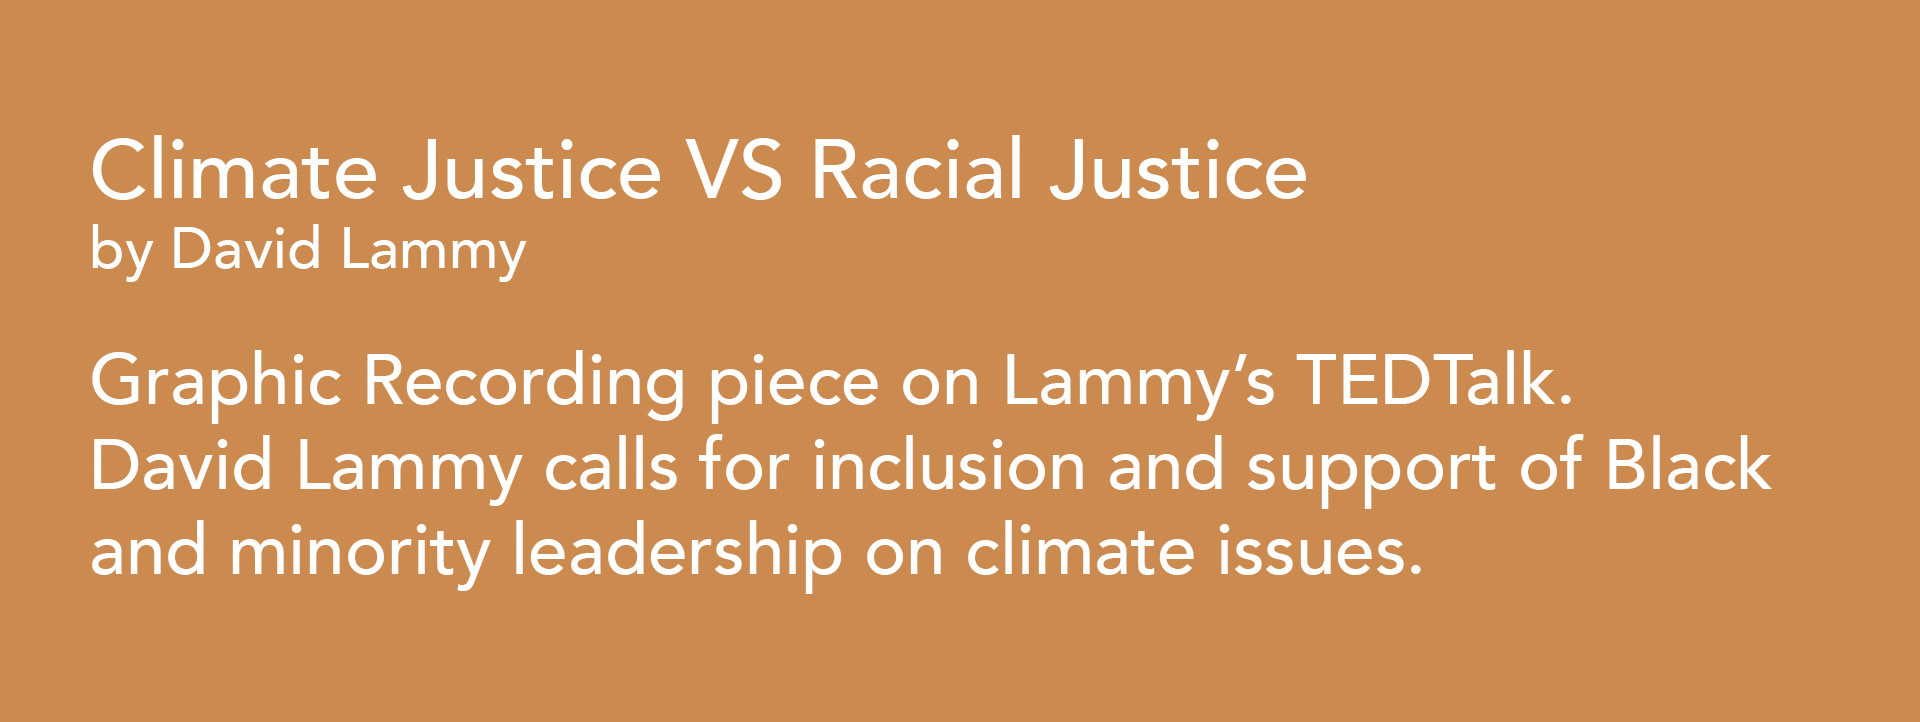 CLIMATE VS RACIAL JUSTICE